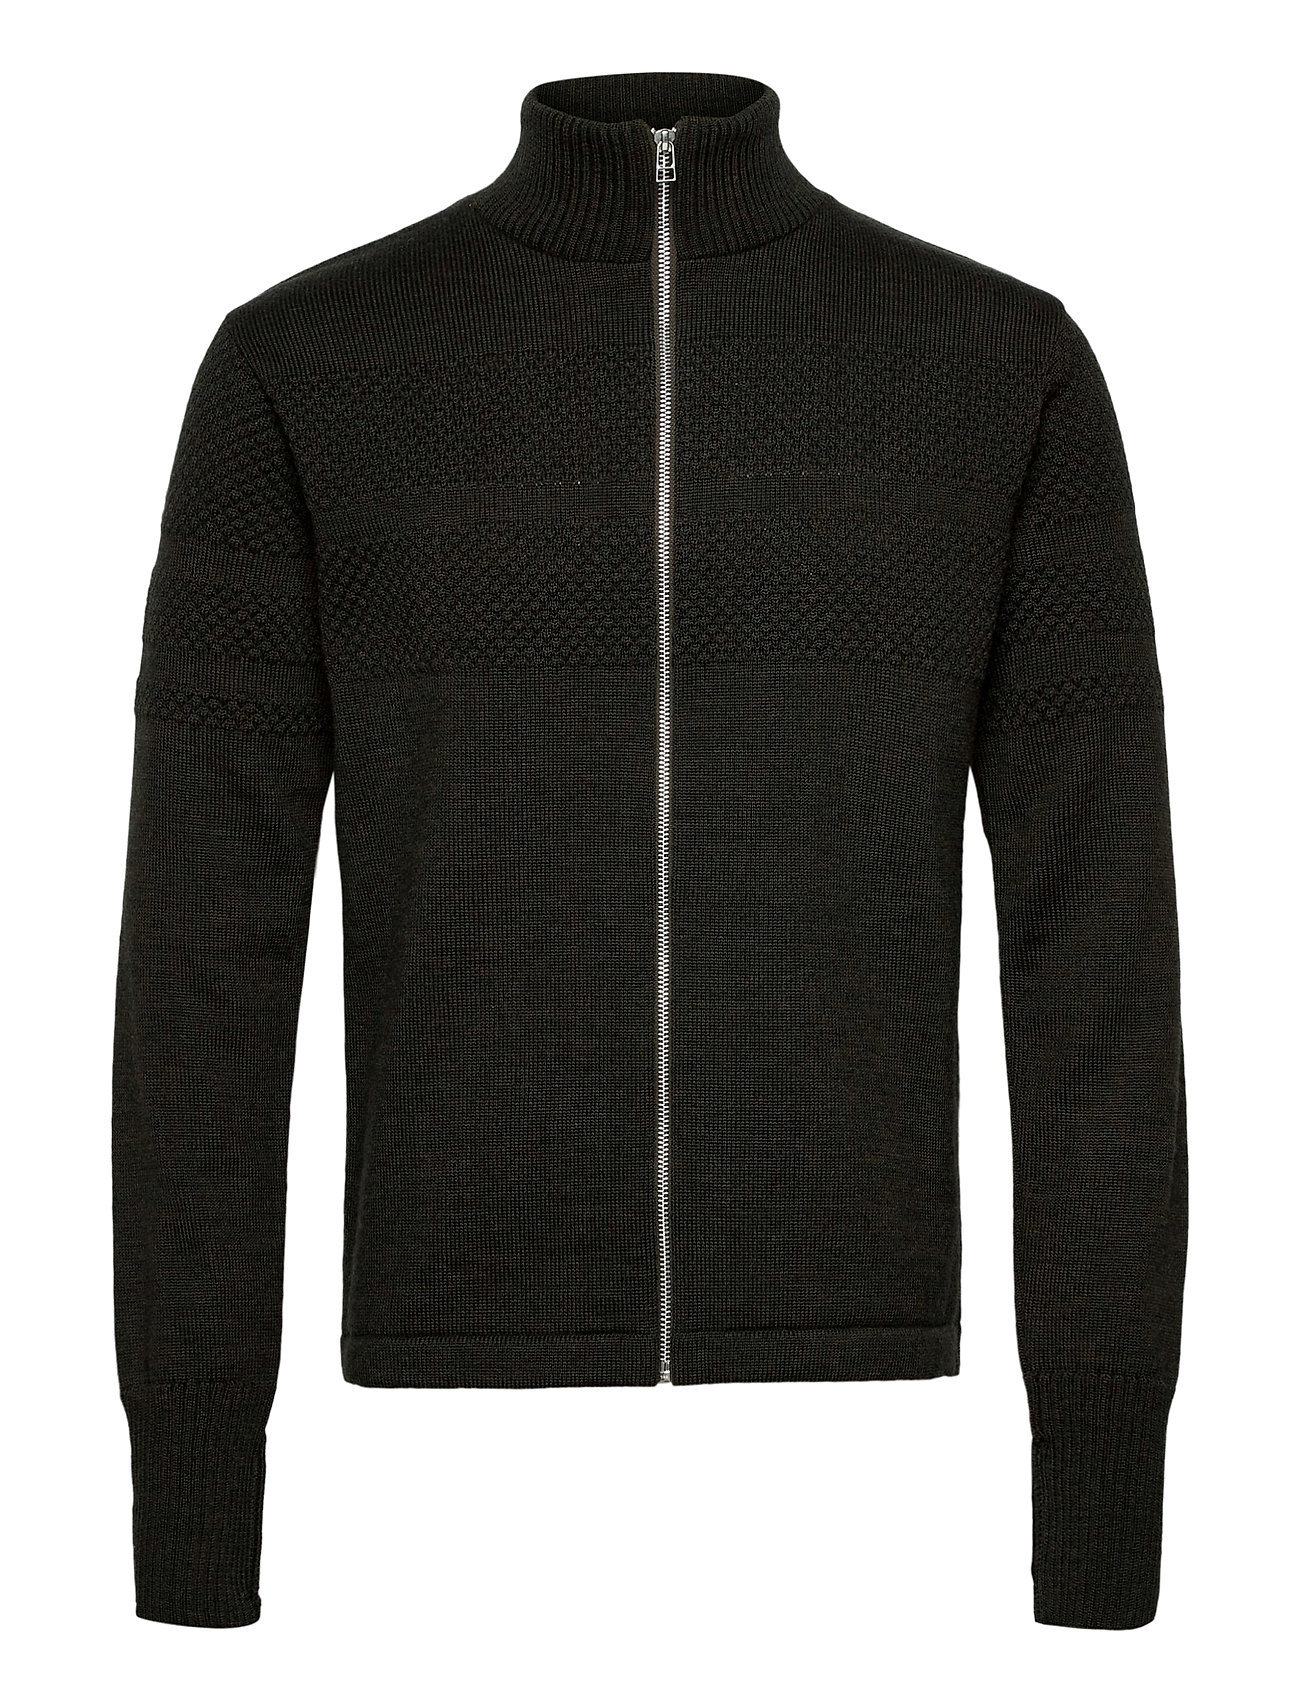 Mads Nørgaard 100% Wool Klemens Zip - FOREST NIGHT